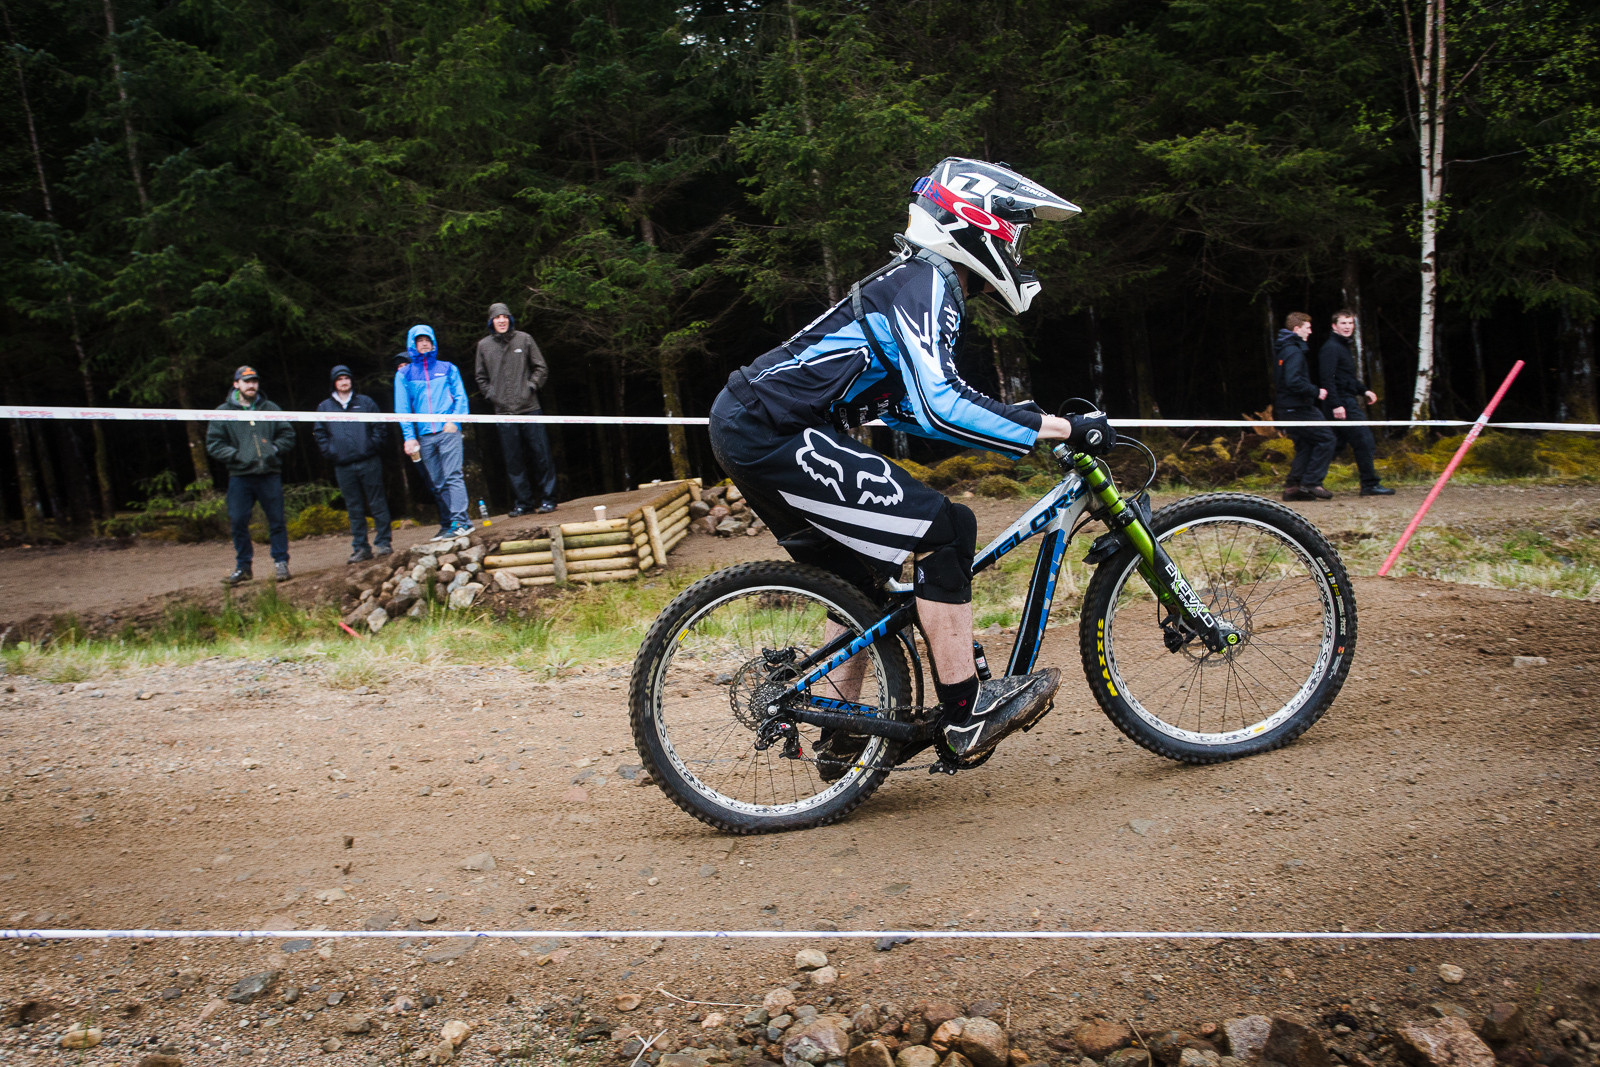 G-Out Fort William - Giant Glory - G-Out Project - Fort William BDS 2015 - Mountain Biking Pictures - Vital MTB